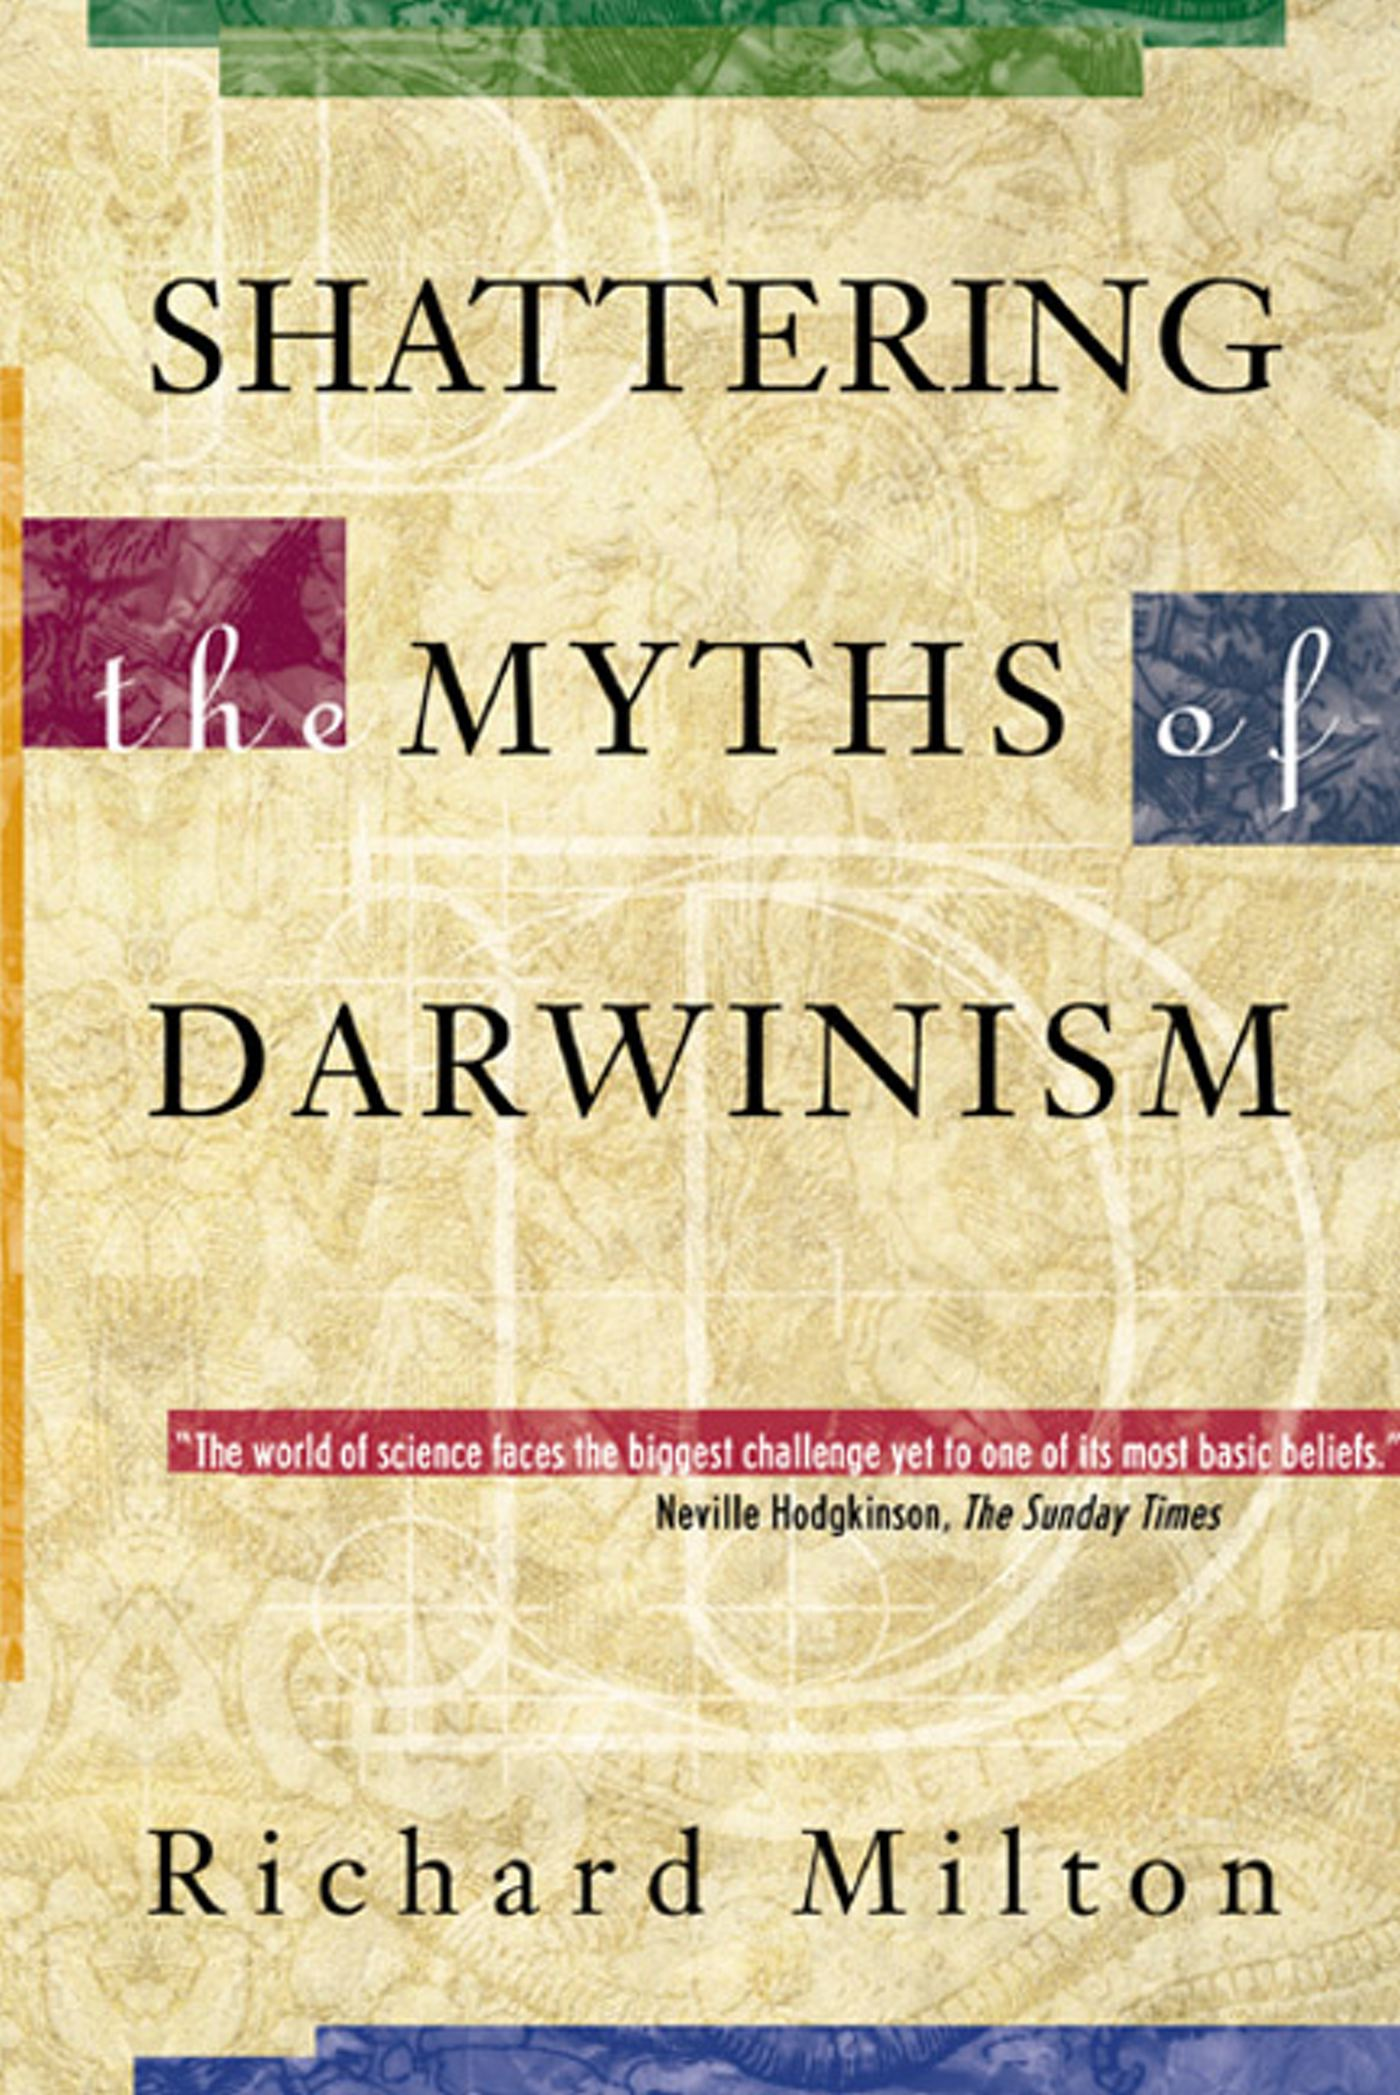 Shattering-the-myths-of-darwinism-9780892818846_hr